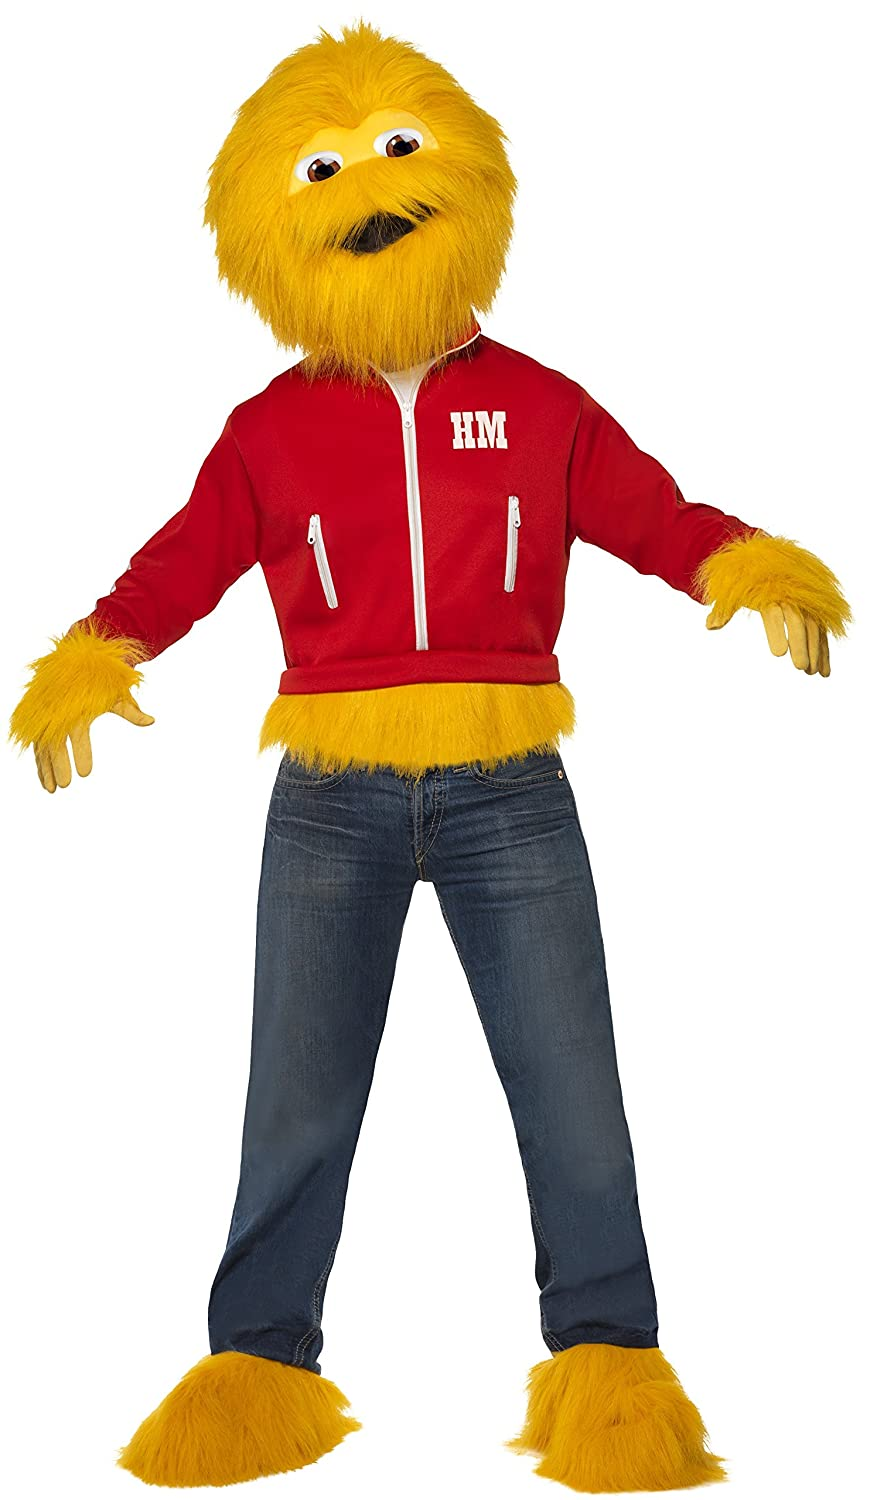 Sugar Puffs Honey Monster Costume. Don't forget to tell 'em about the honey mummy... remember the TV ads? Ideal for 70s/80s Halloween parties.